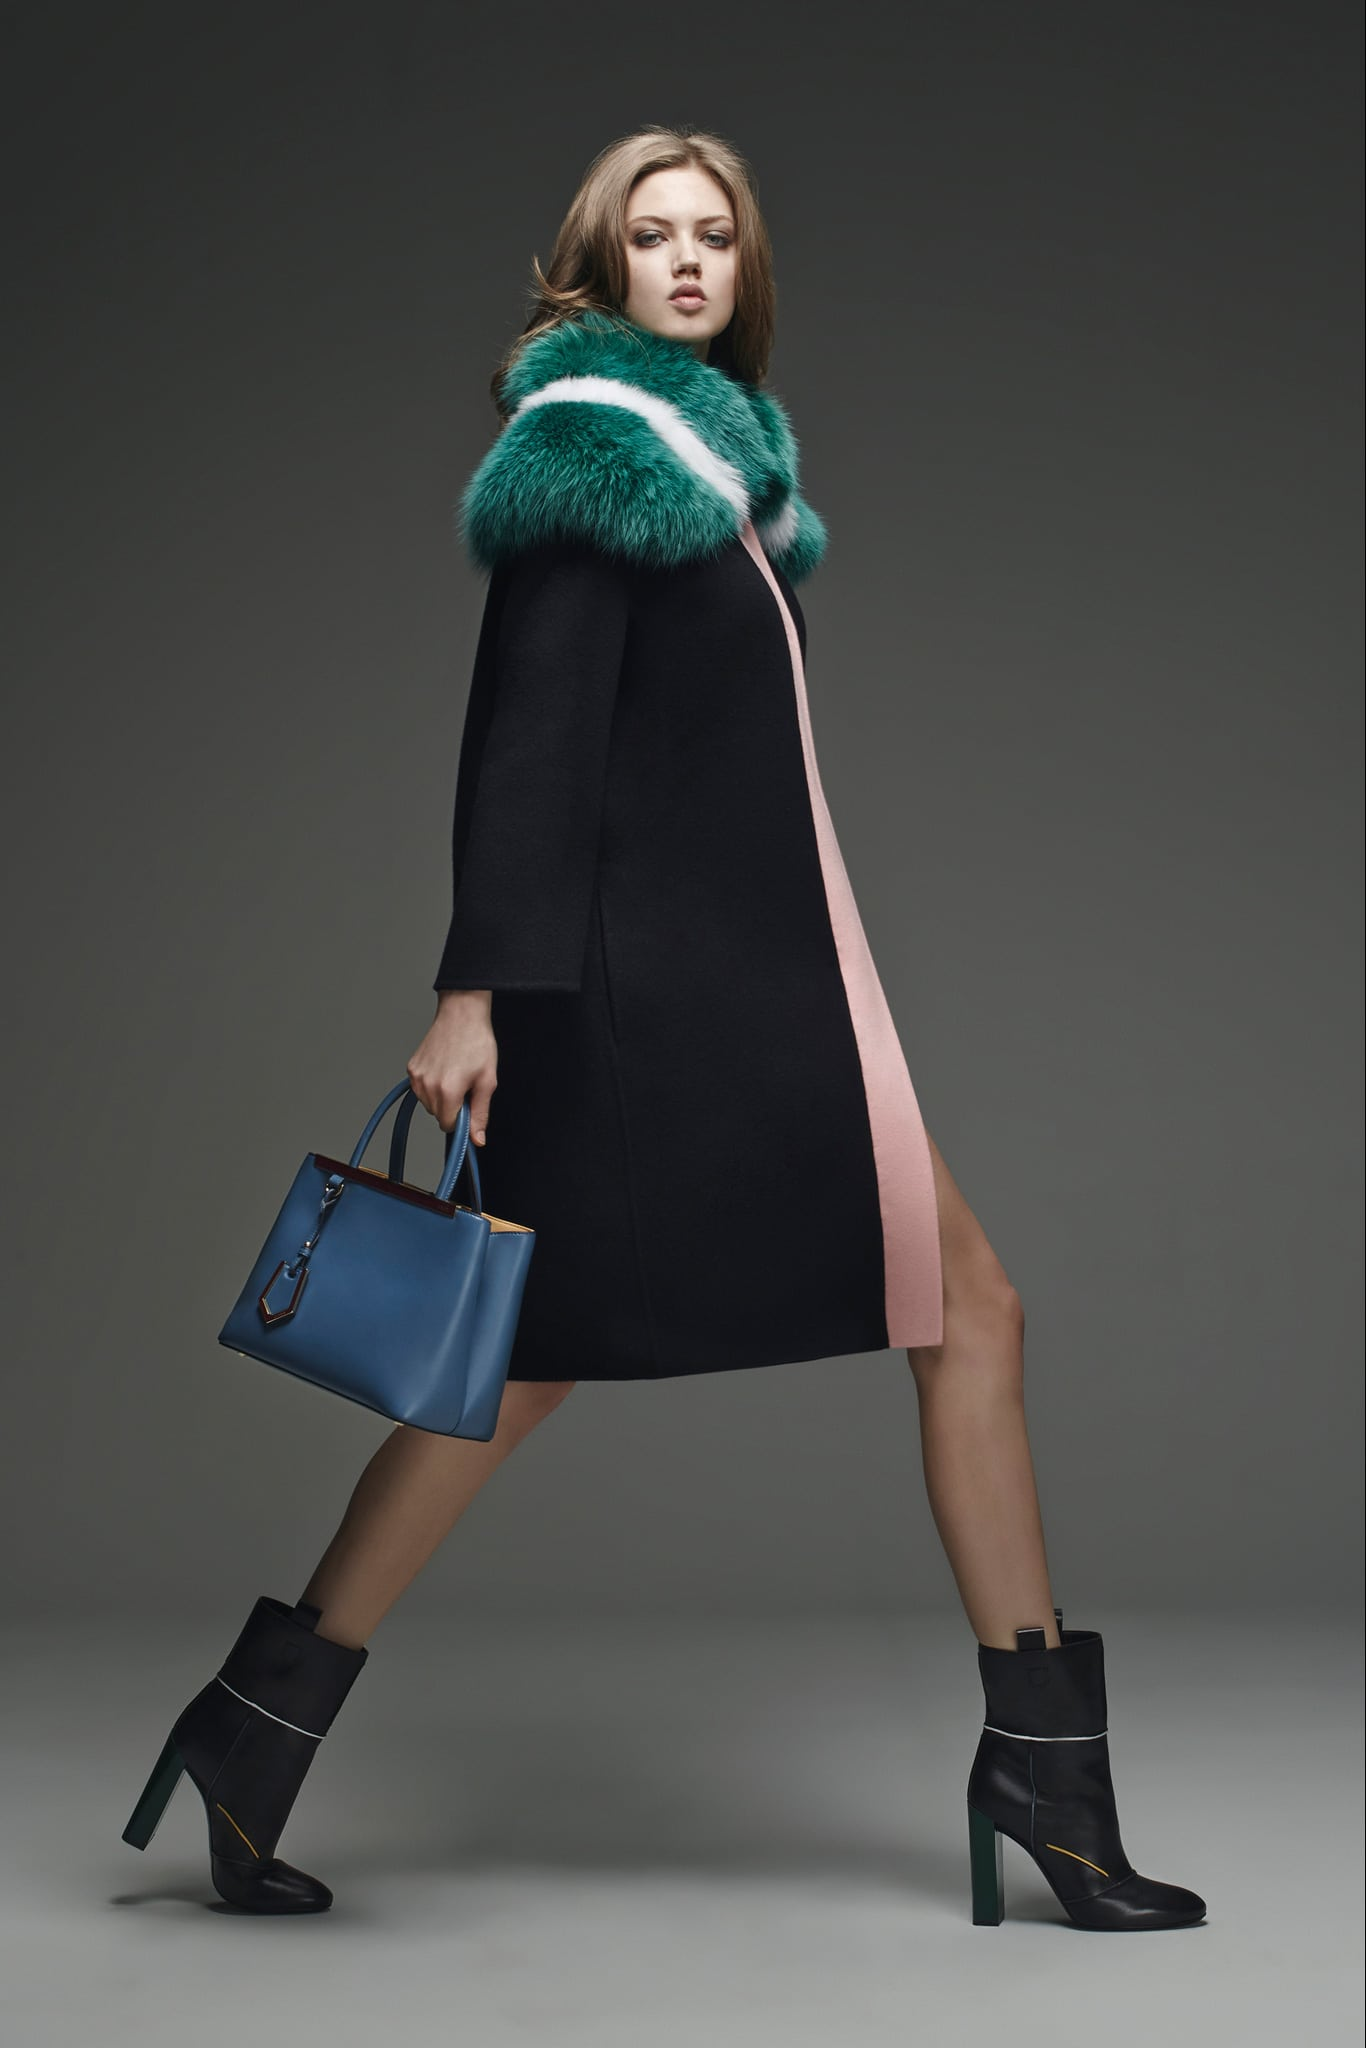 2015 Fall Winter 2016 Fashion Trends For Teens: Fendi Pre-Fall 2015 Lookbook Collection